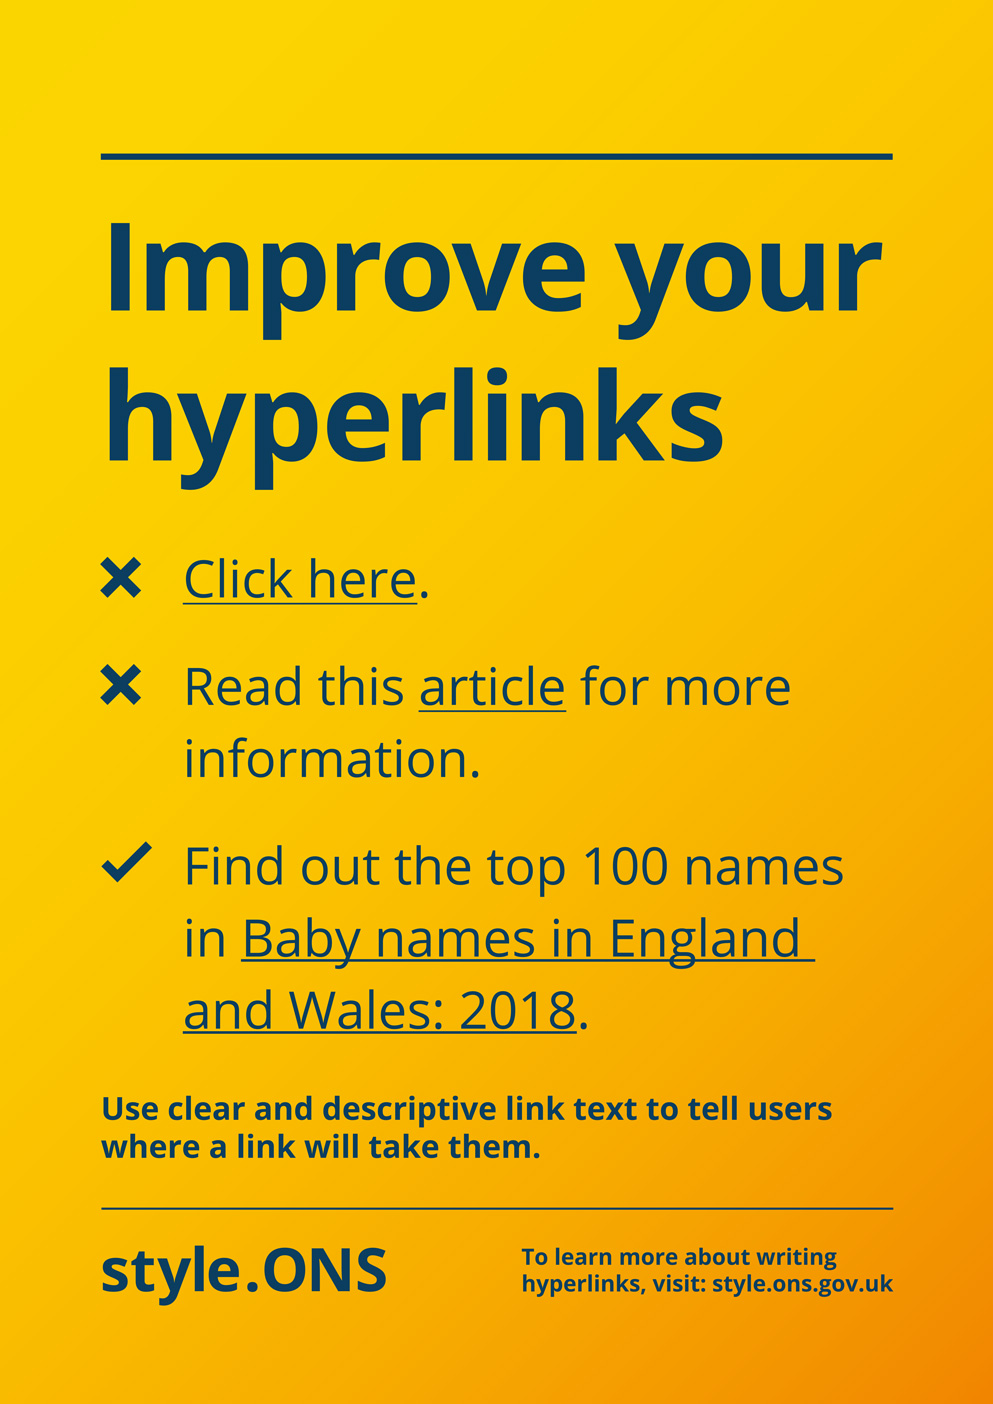 Style.ONS poster on improving hyperlink text